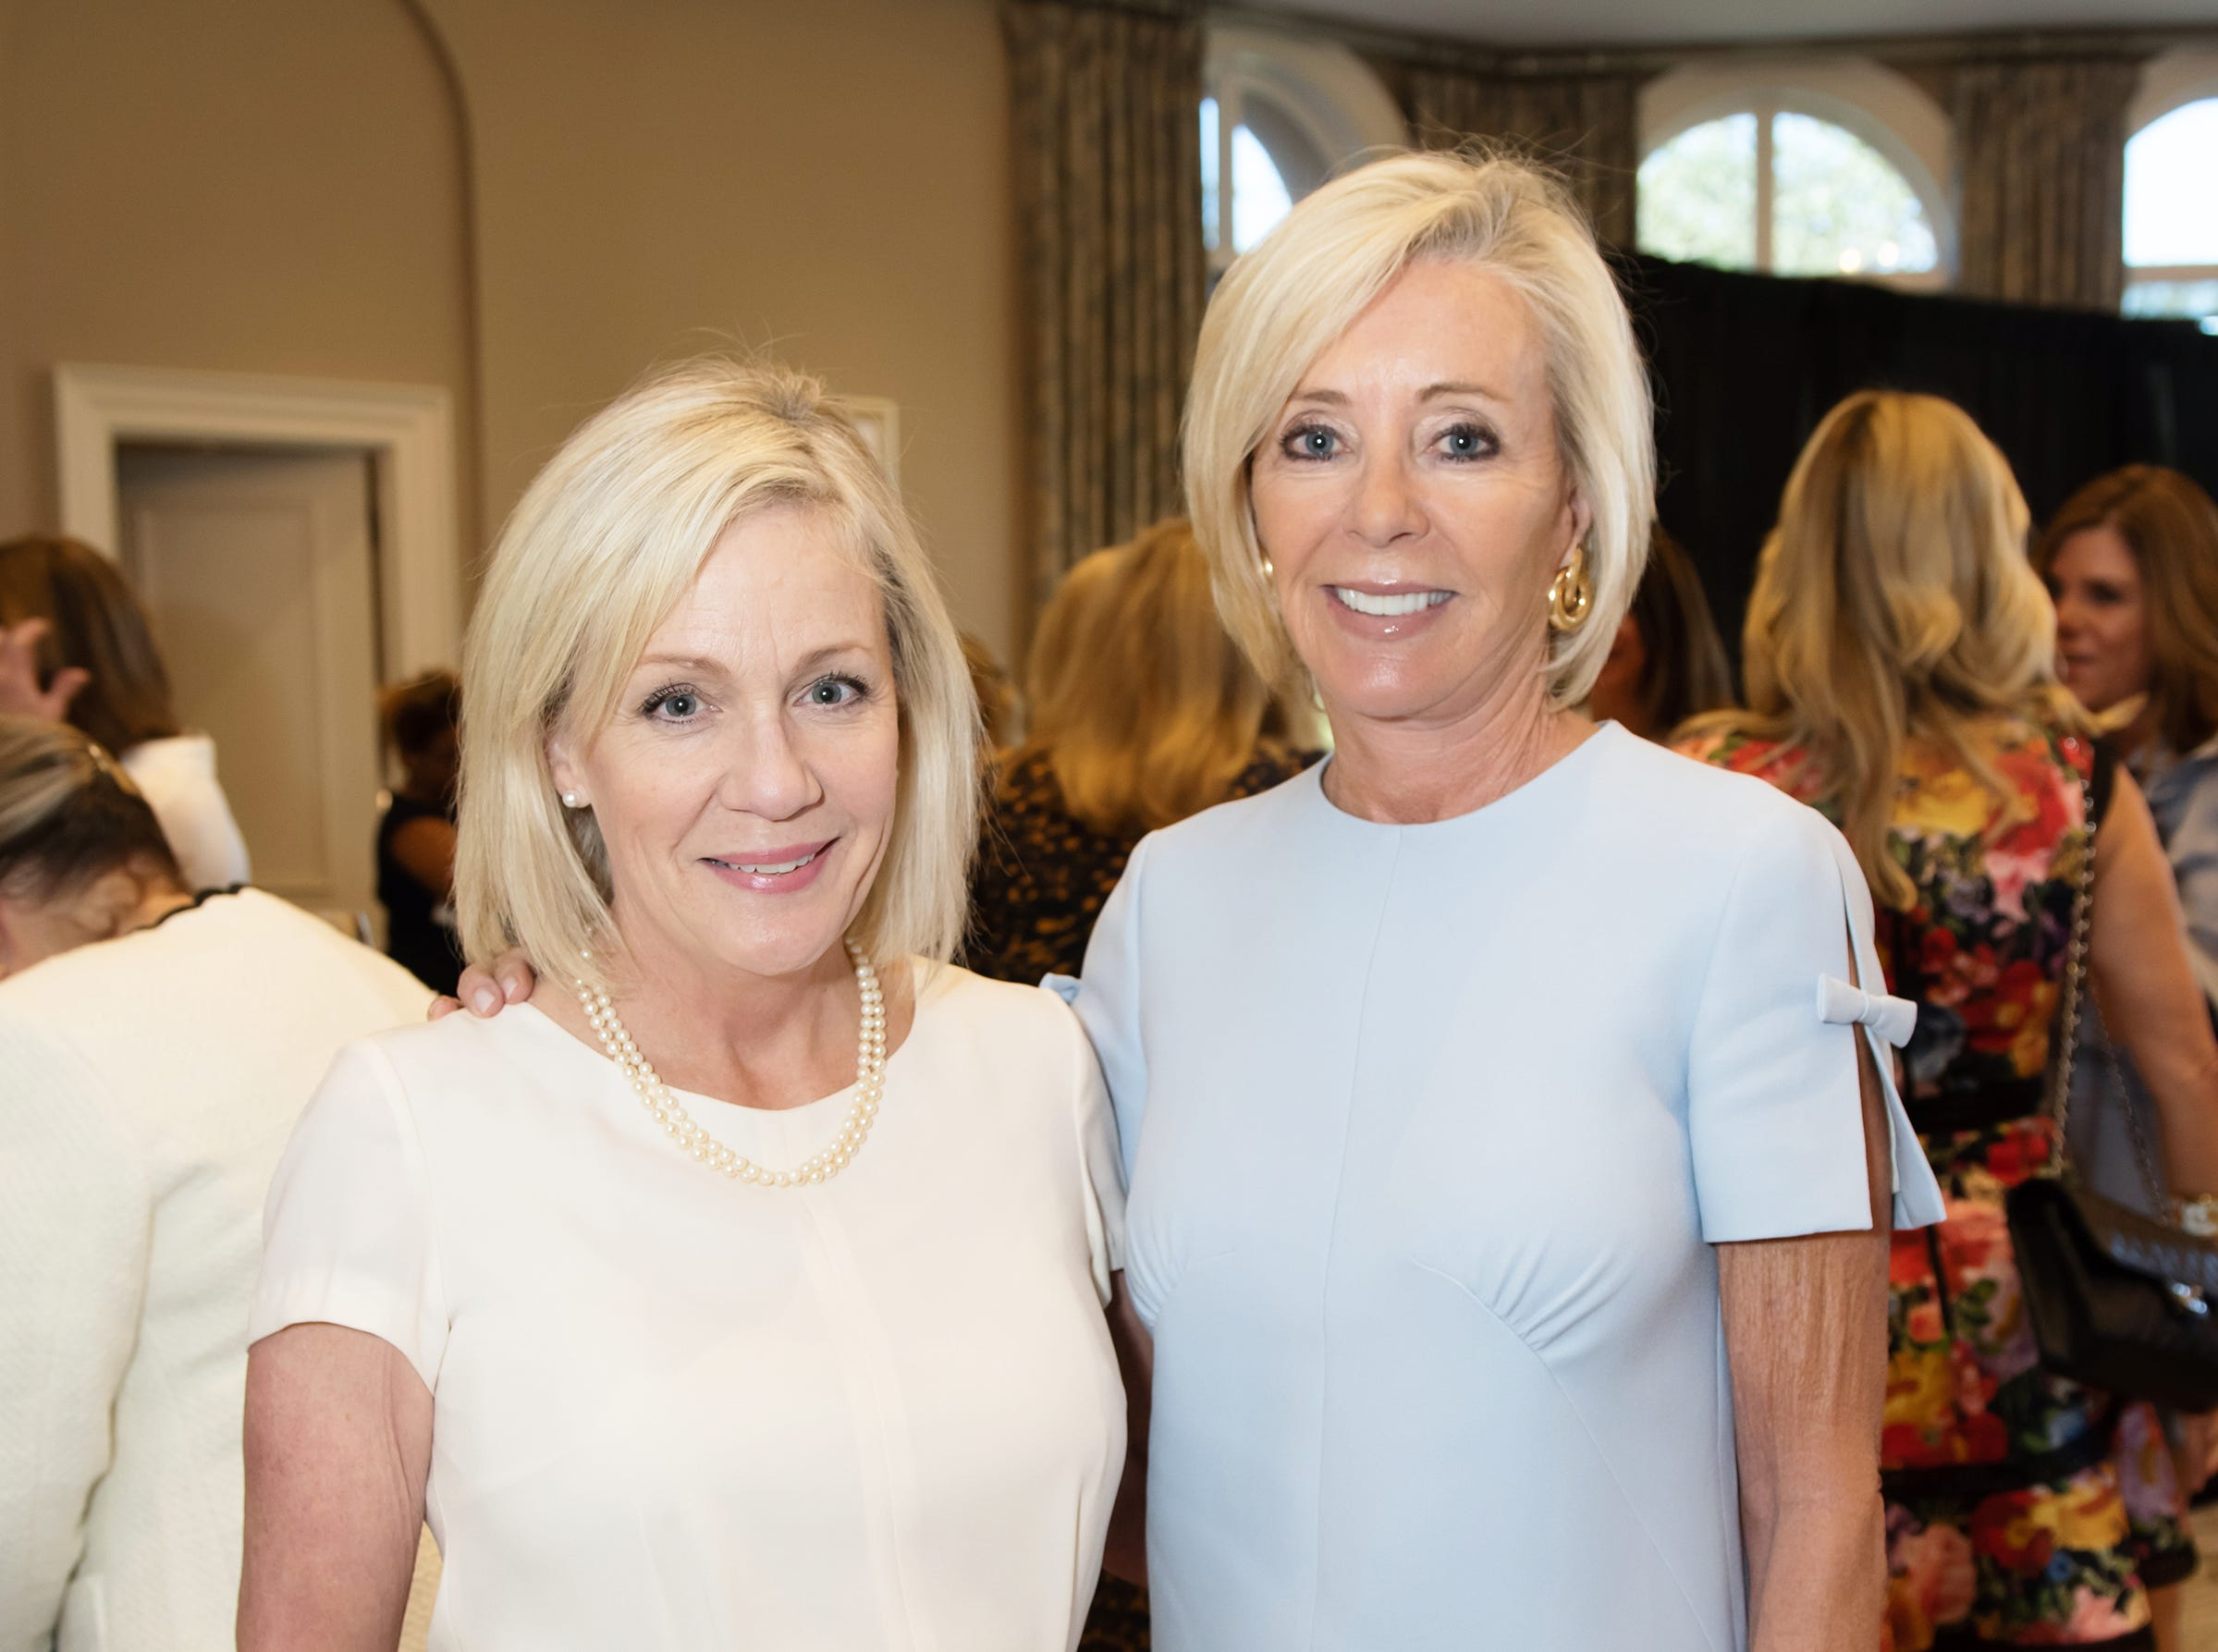 Mary Blaisdell and Christine Nixon at the Golden Heart Luncheon in Palm Beach Gardens.